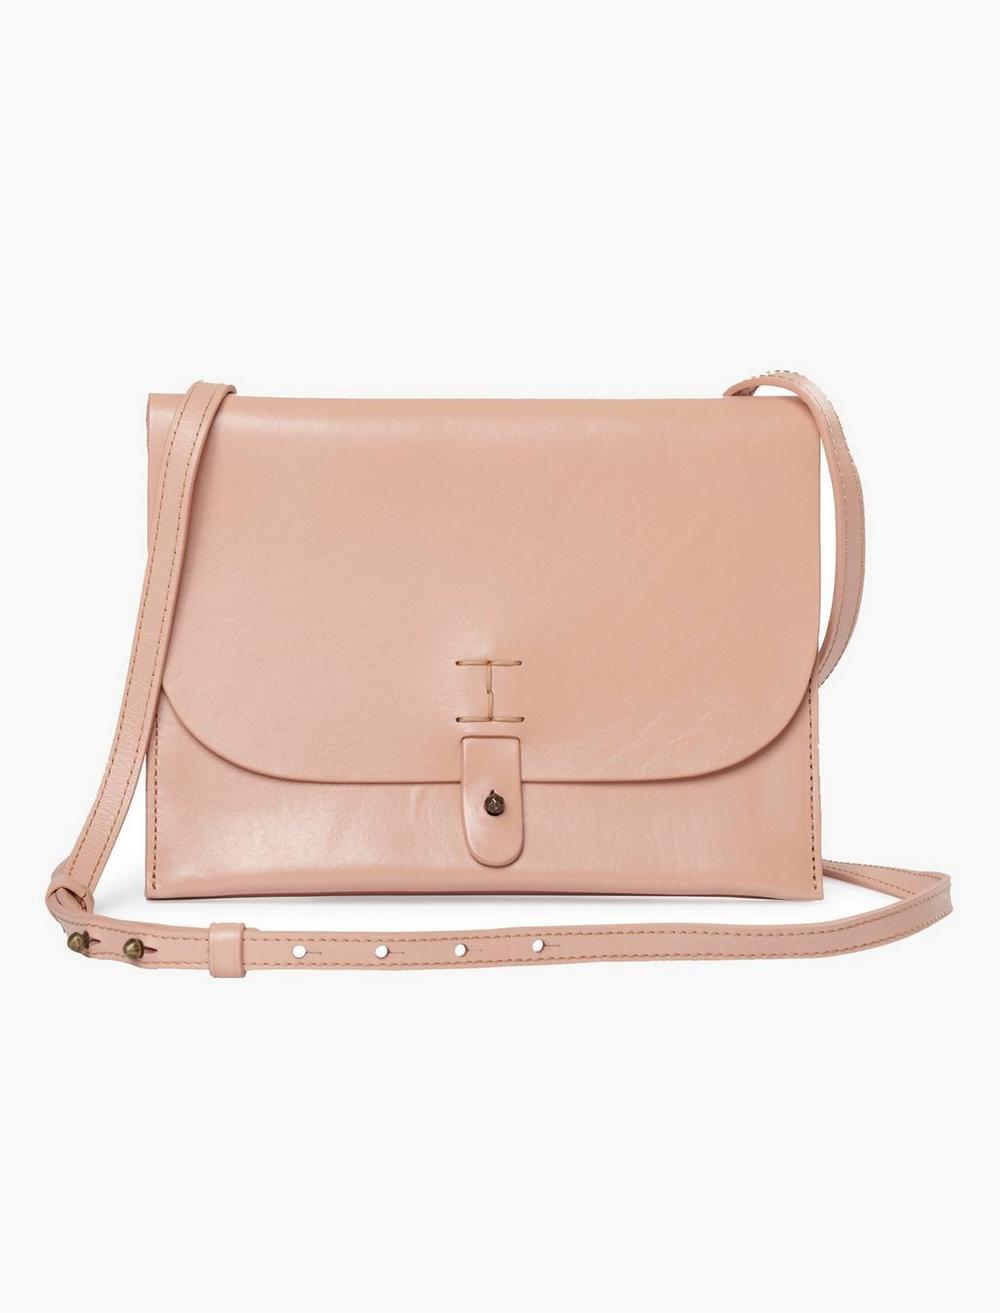 THE POINT LEATHER CROSSBODY BAG, image 1